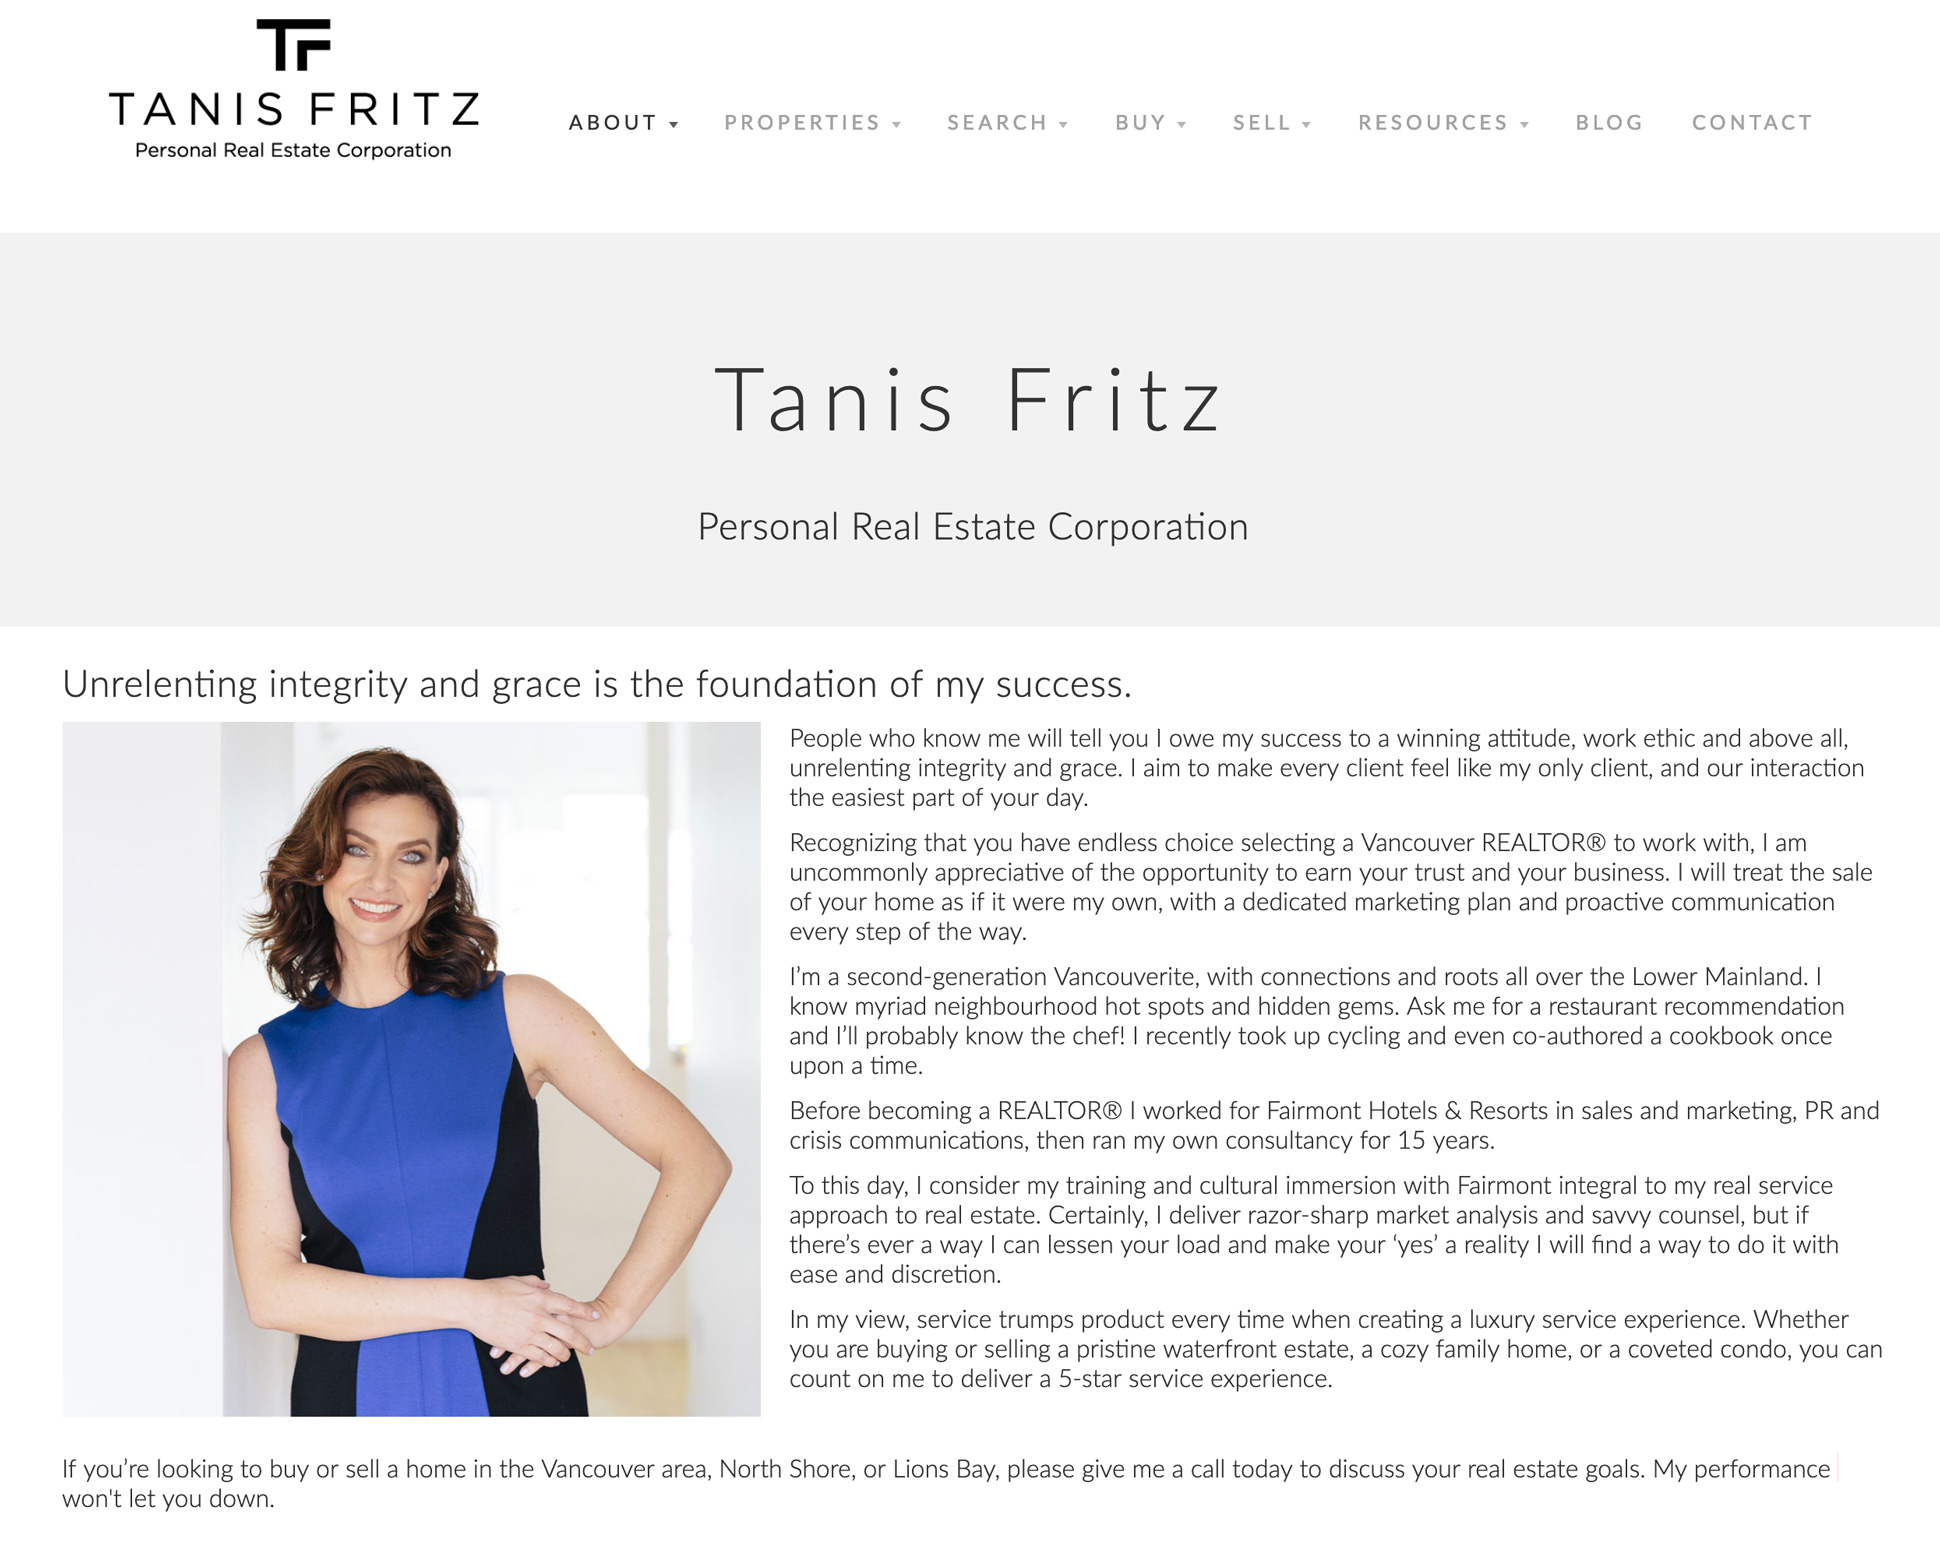 The About Me page on Tanis Fritz's real estate website